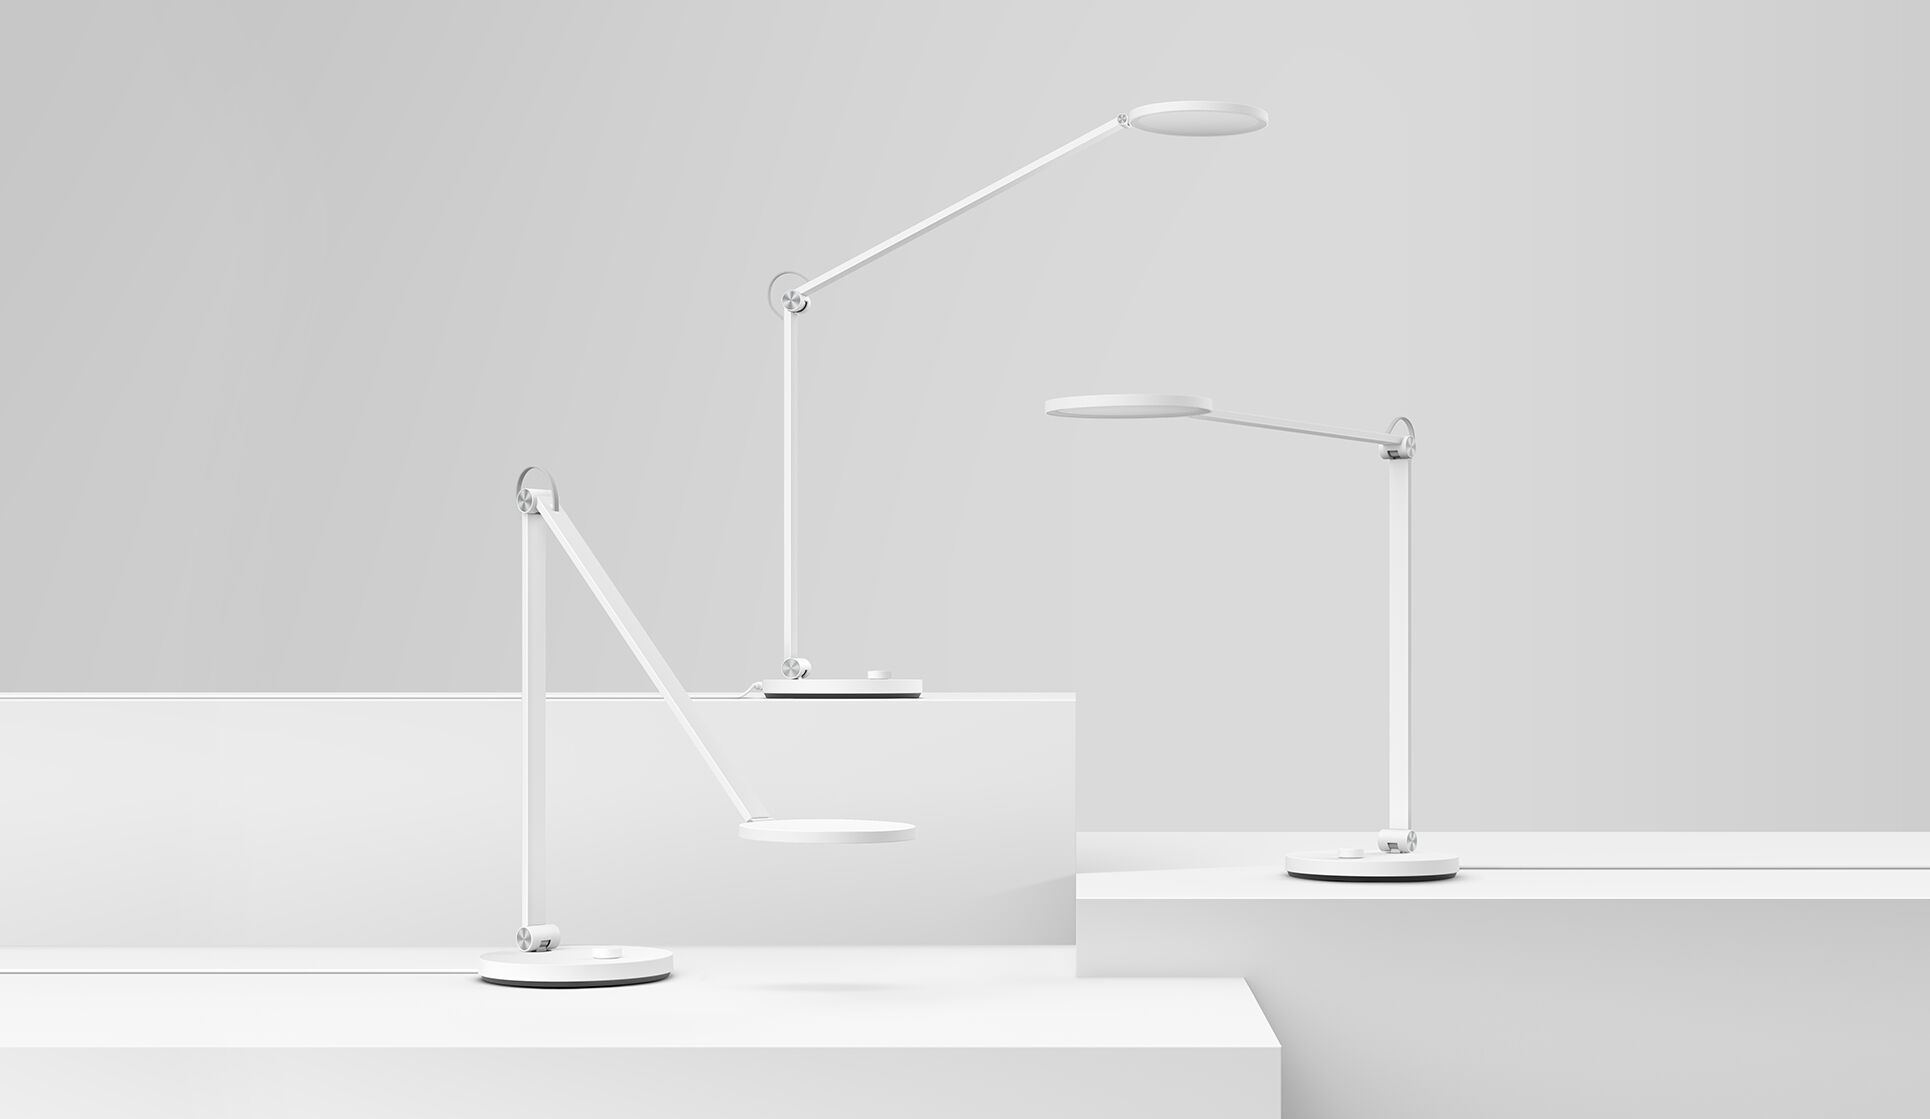 mi-smart-led-desk-lamp-pro-t10